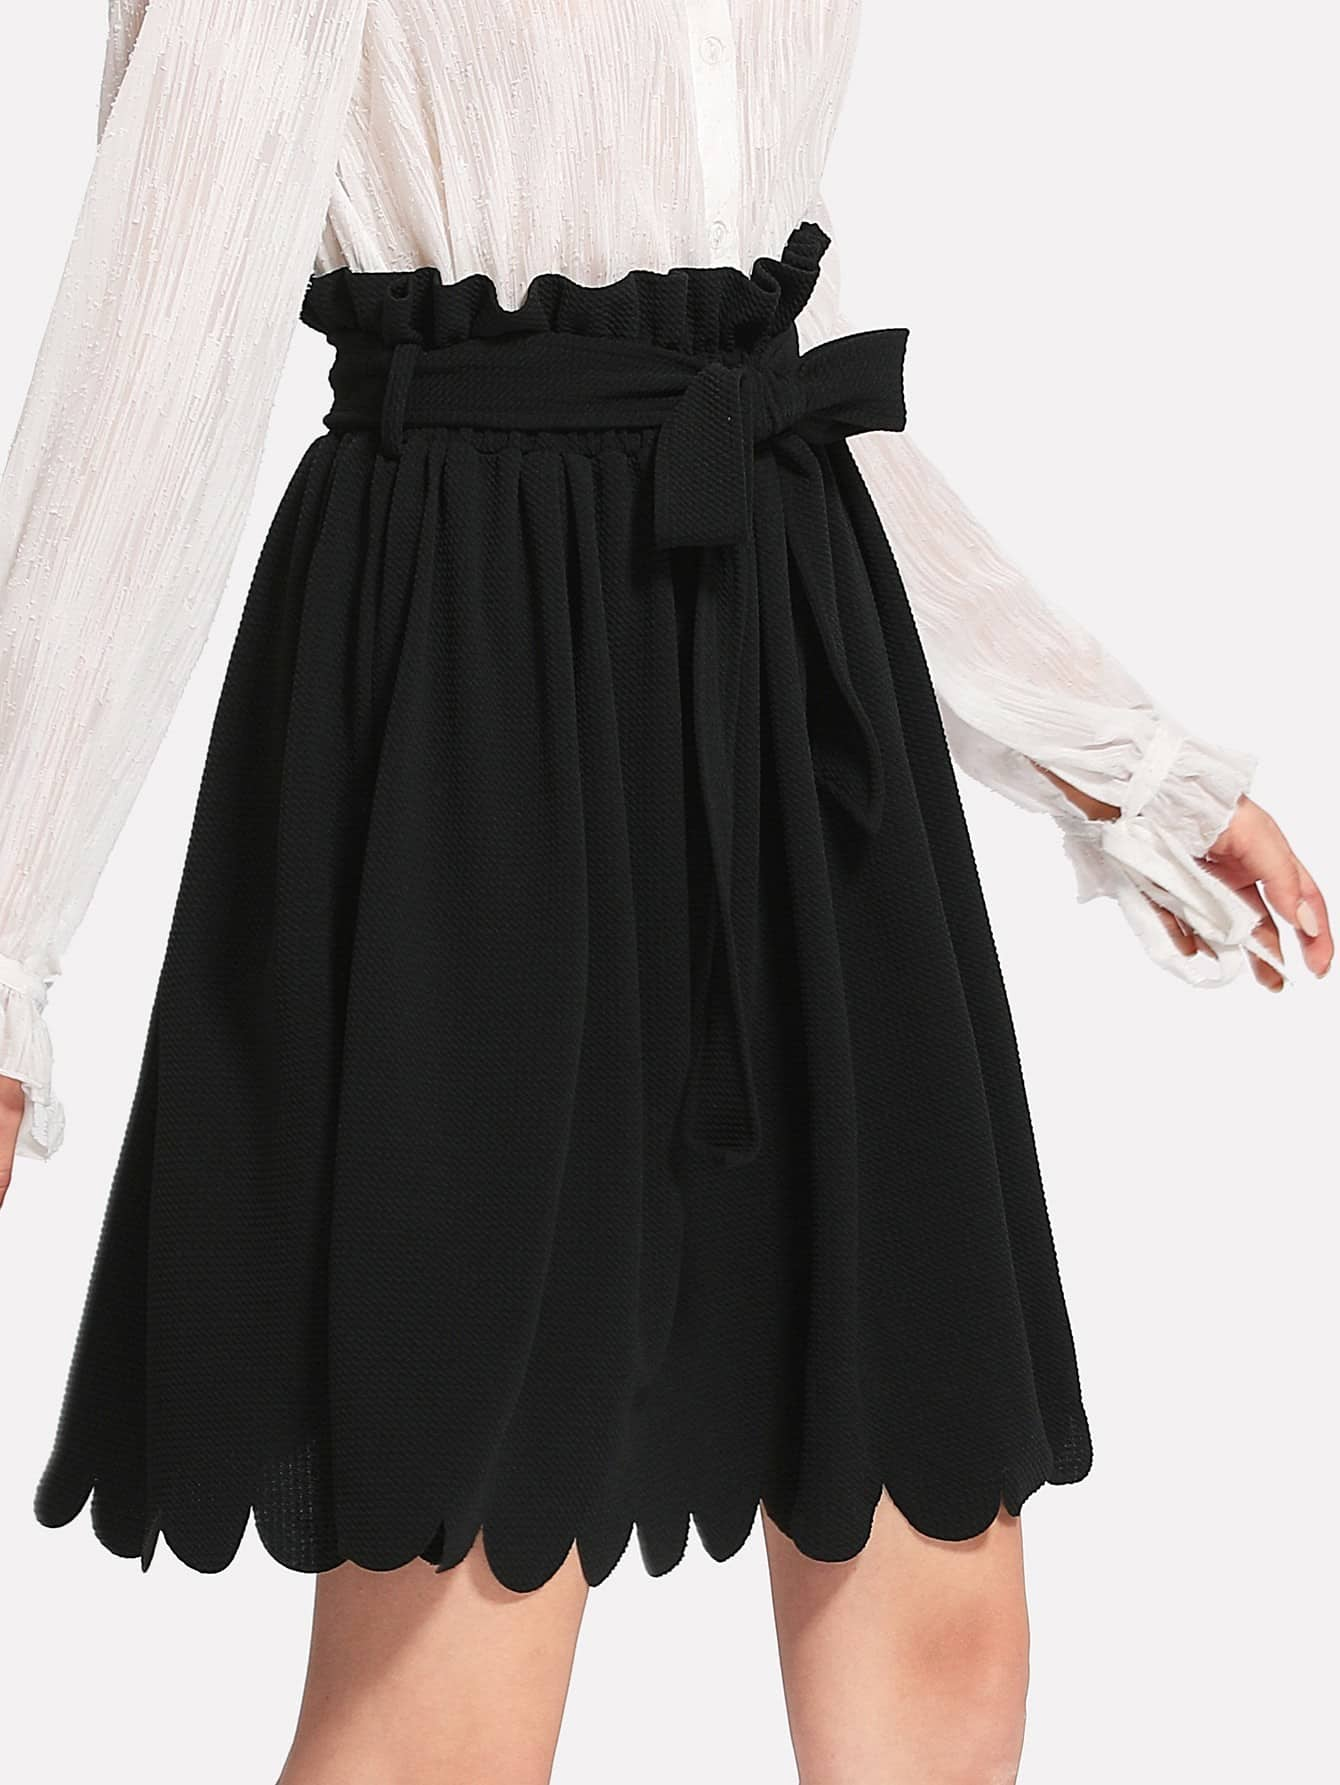 Self Belt Scallop Hem Textured Skirt ruffle waist zip back scallop hem embroidered gingham skirt